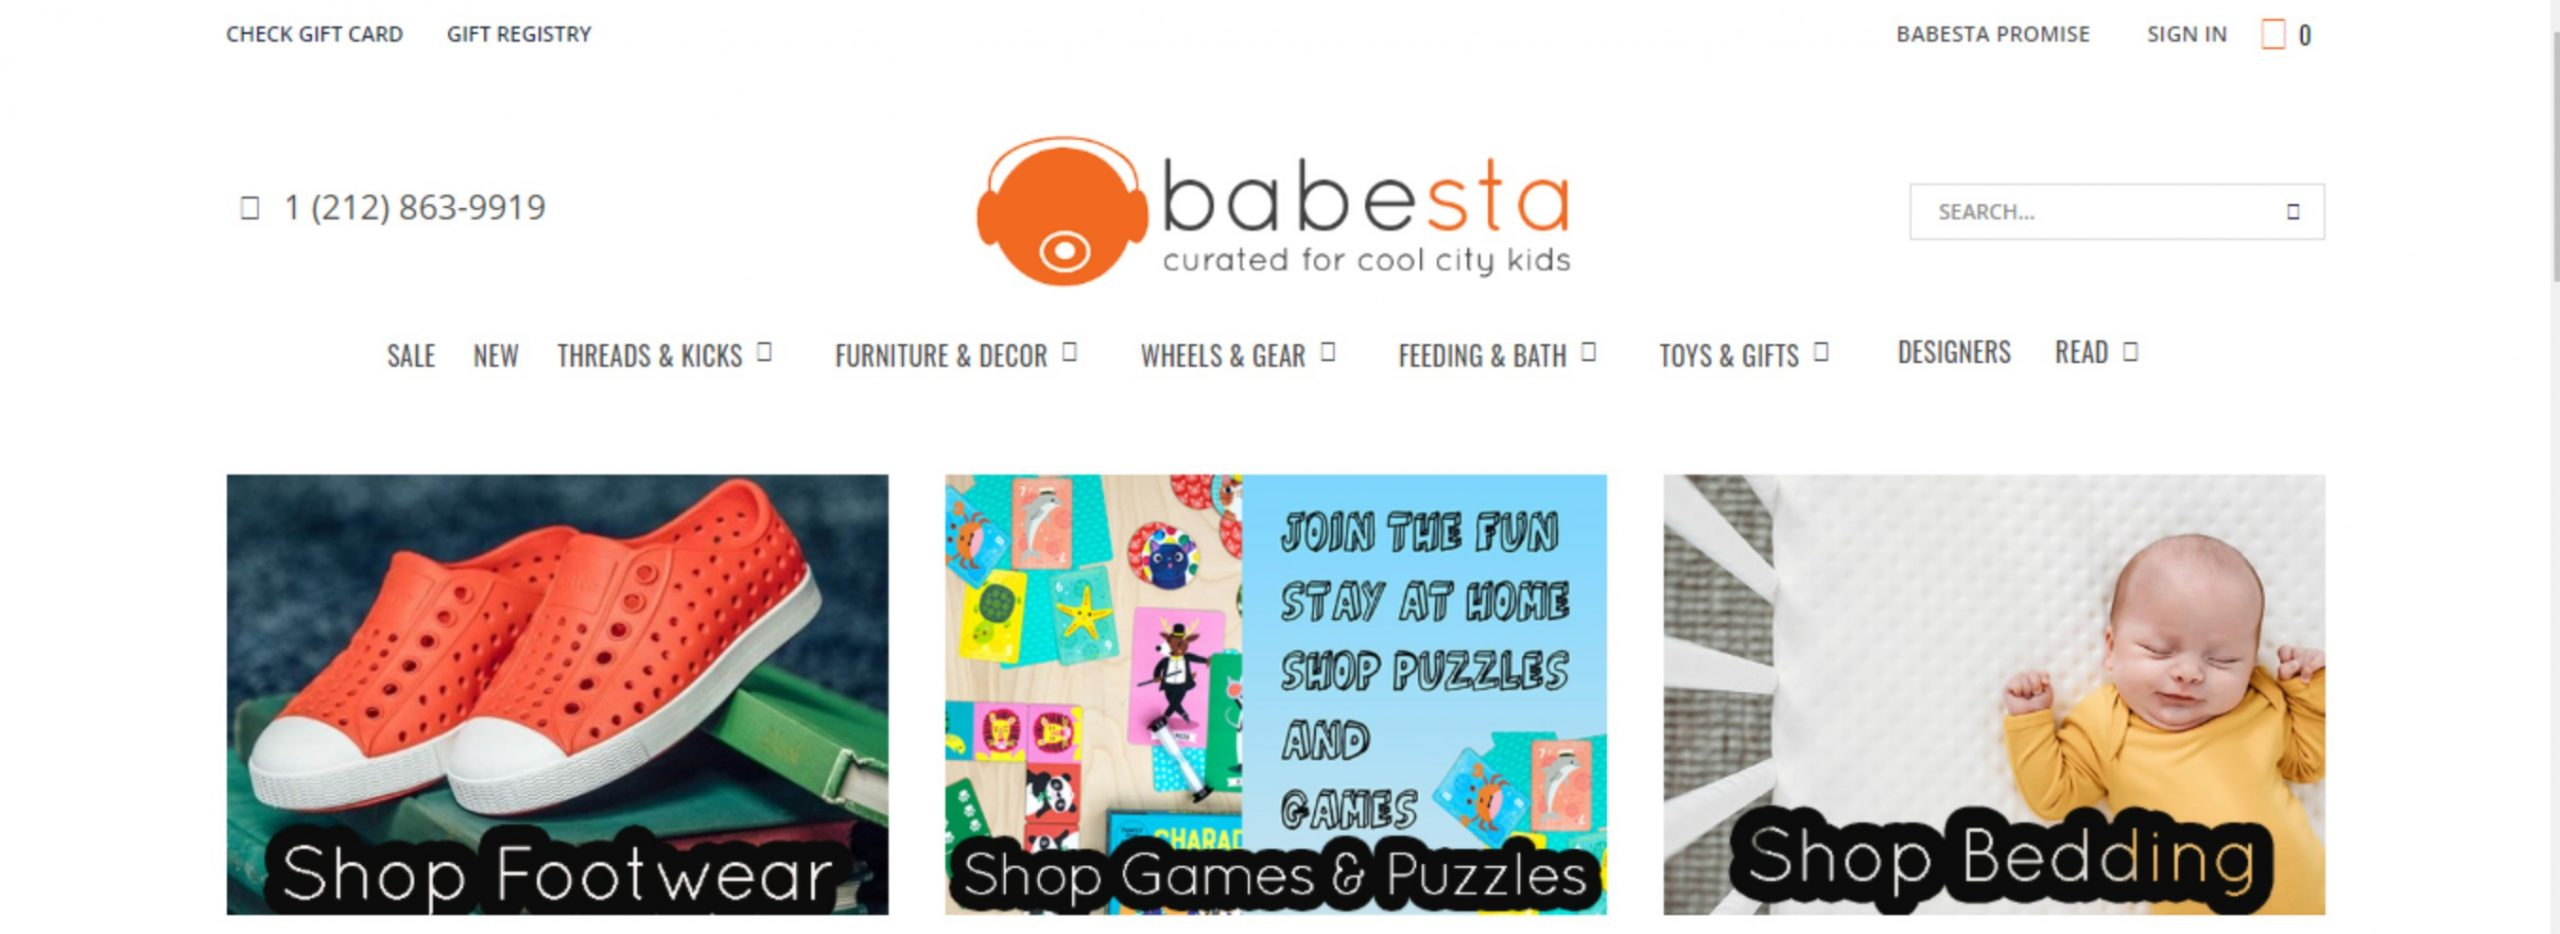 best kids clothing new york babesta